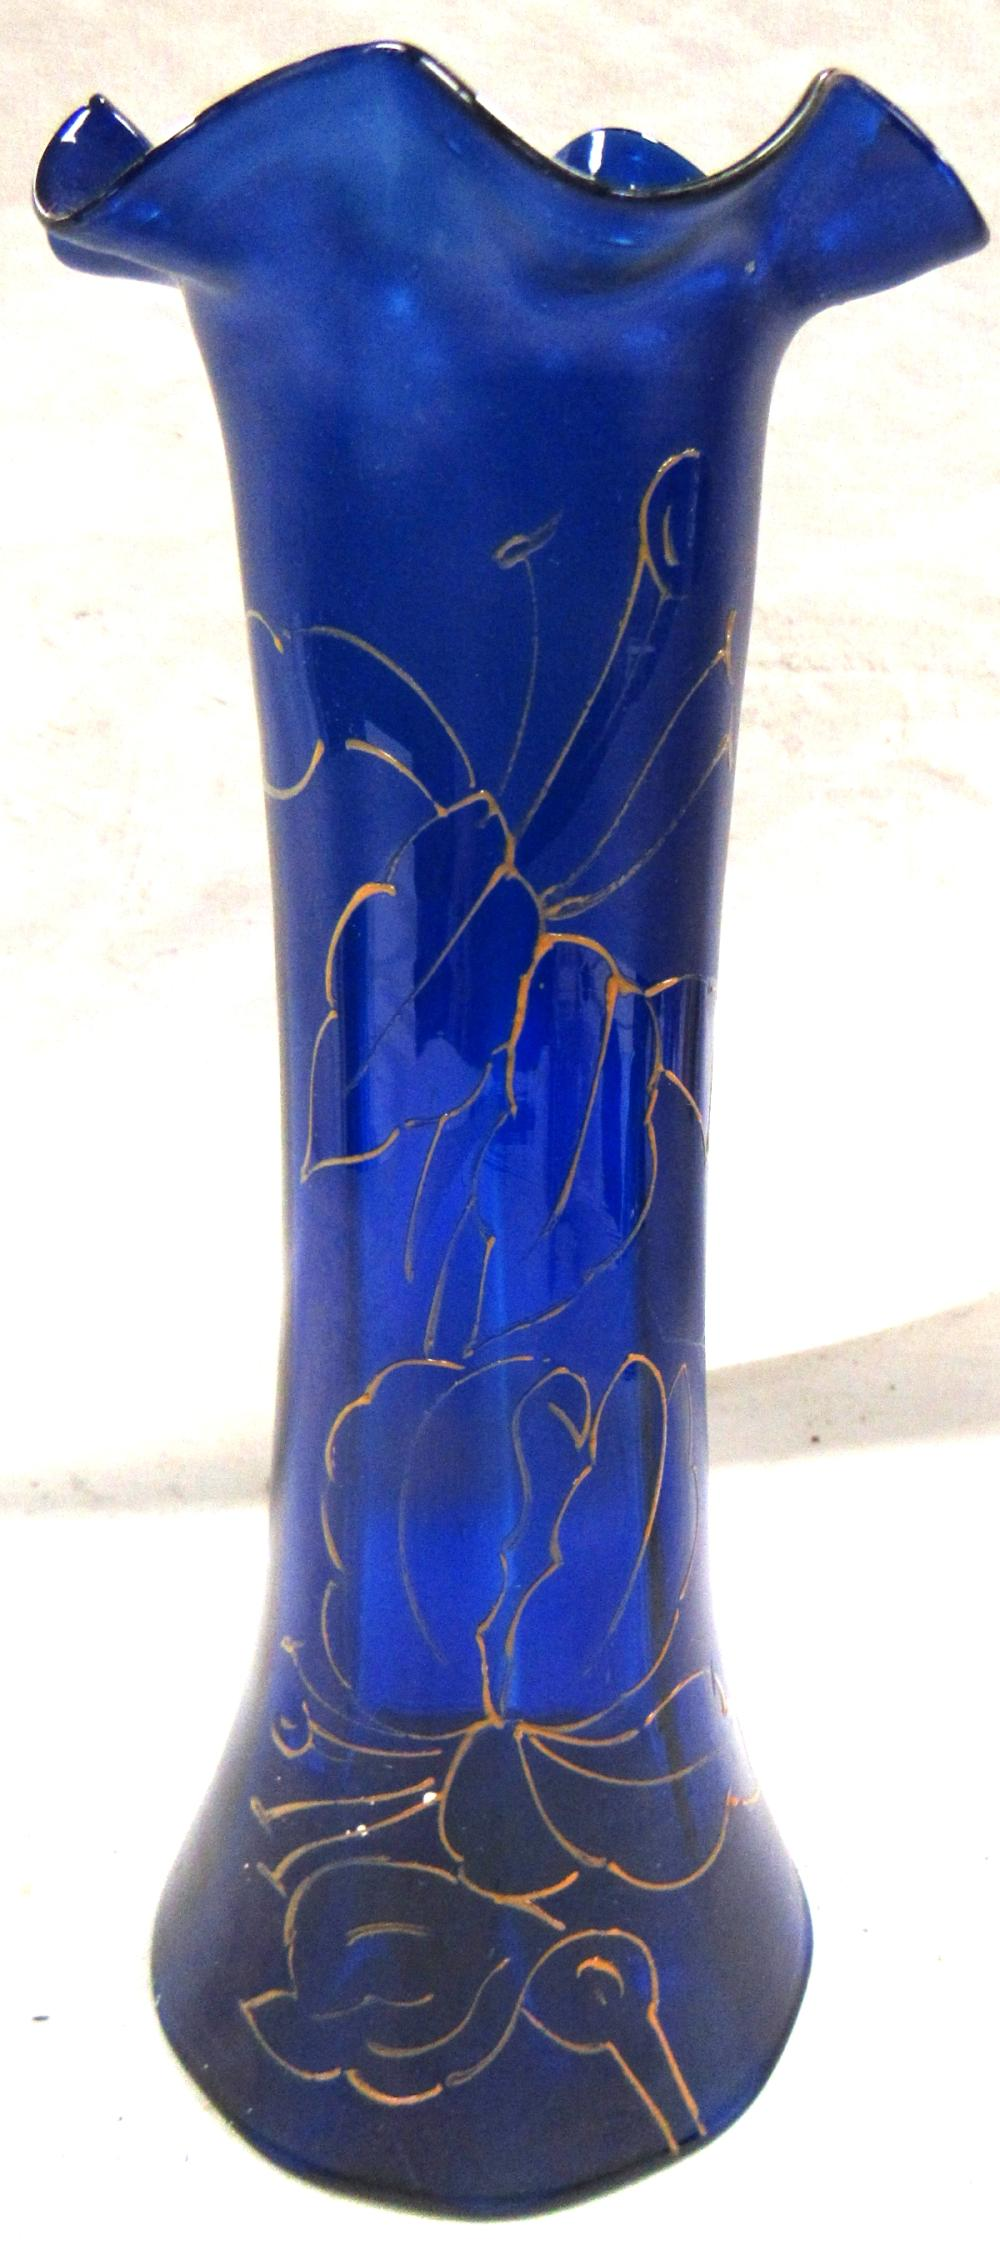 "Lot 32: Cobalt Blue Czech Bohemian Art Glass Hand Painted Gold Enamel Floral Vase , 8""H, EC"